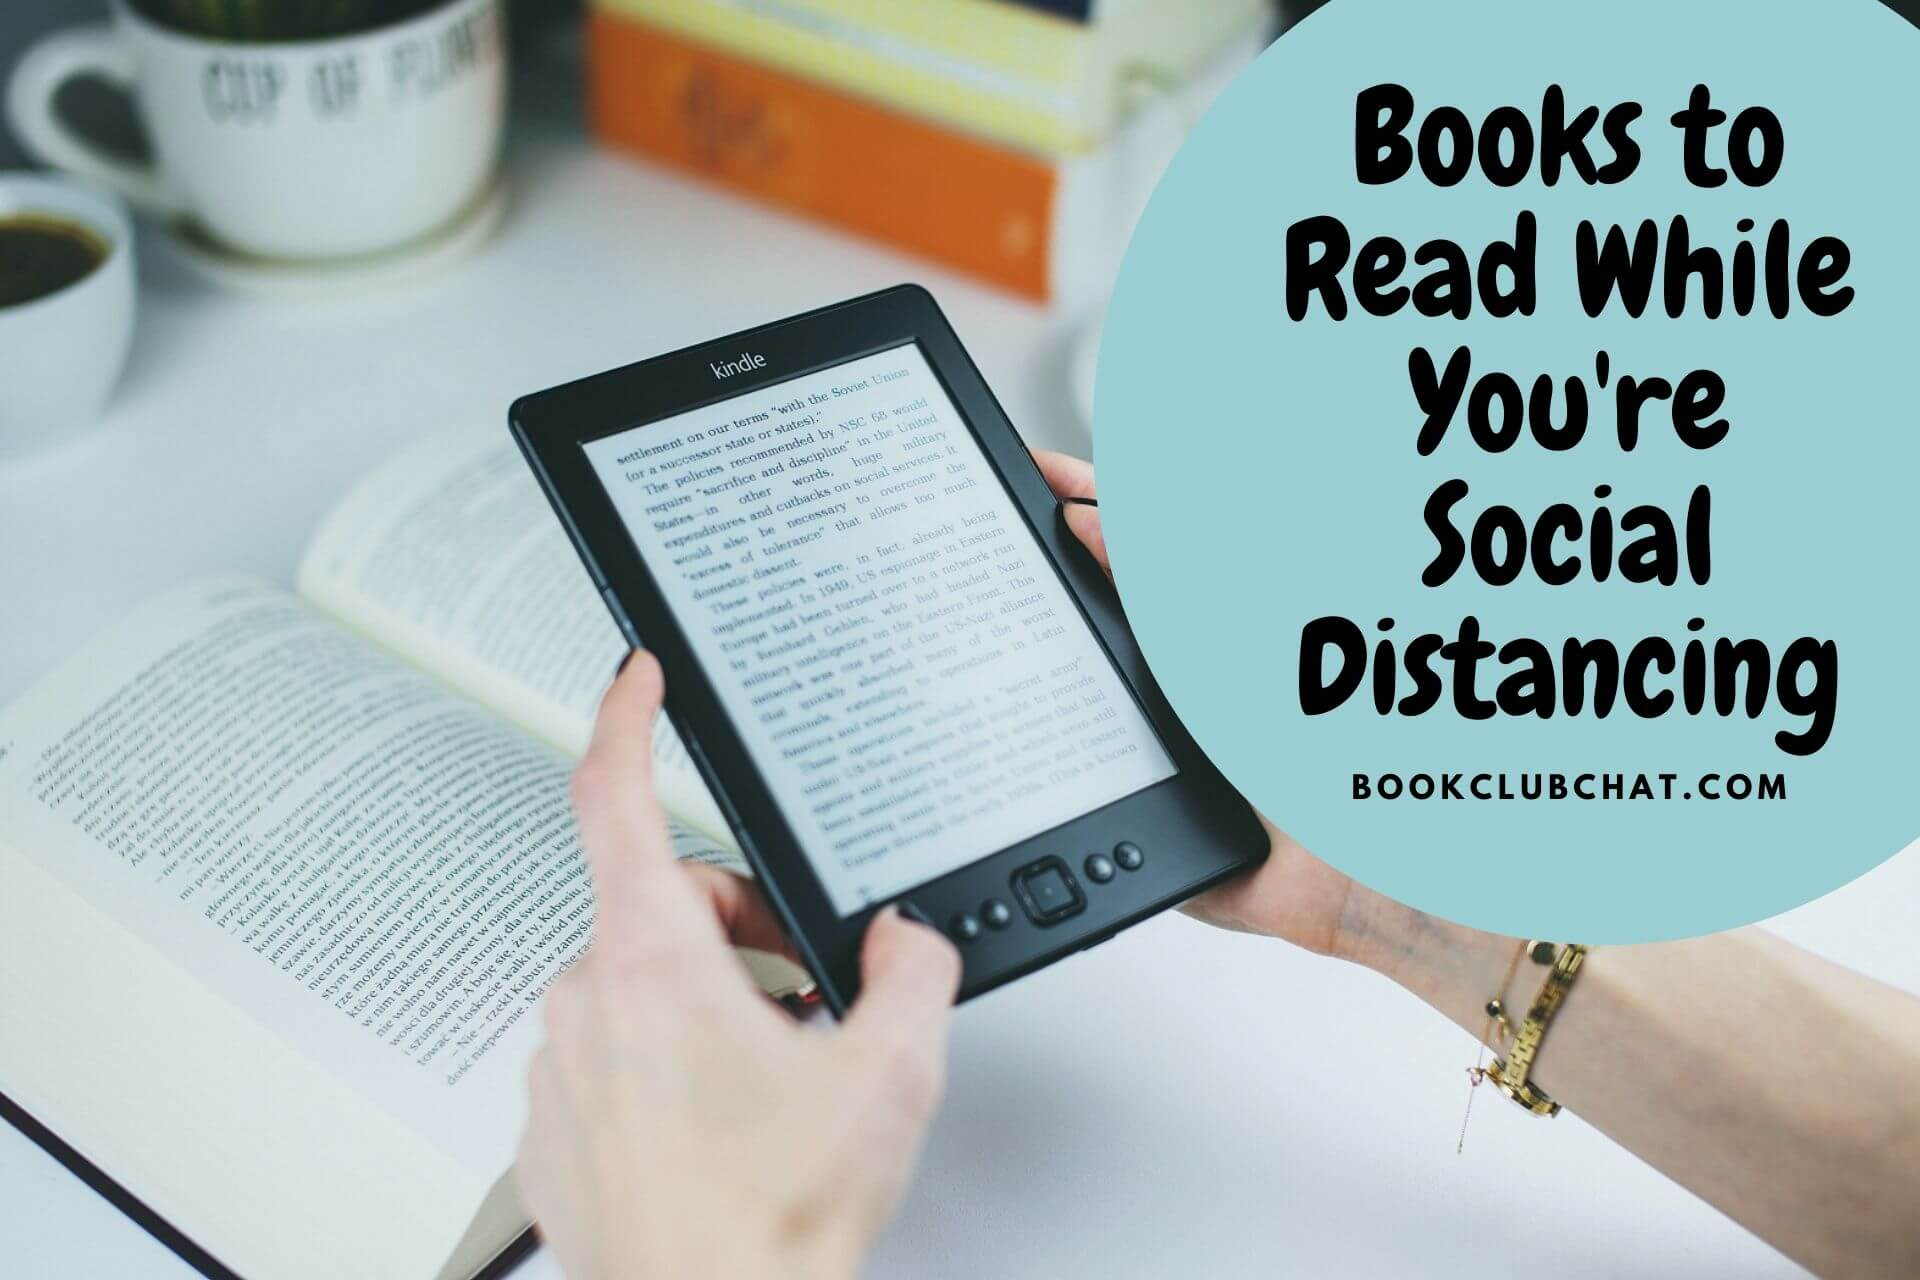 books to read while you're social distancing - book club chat